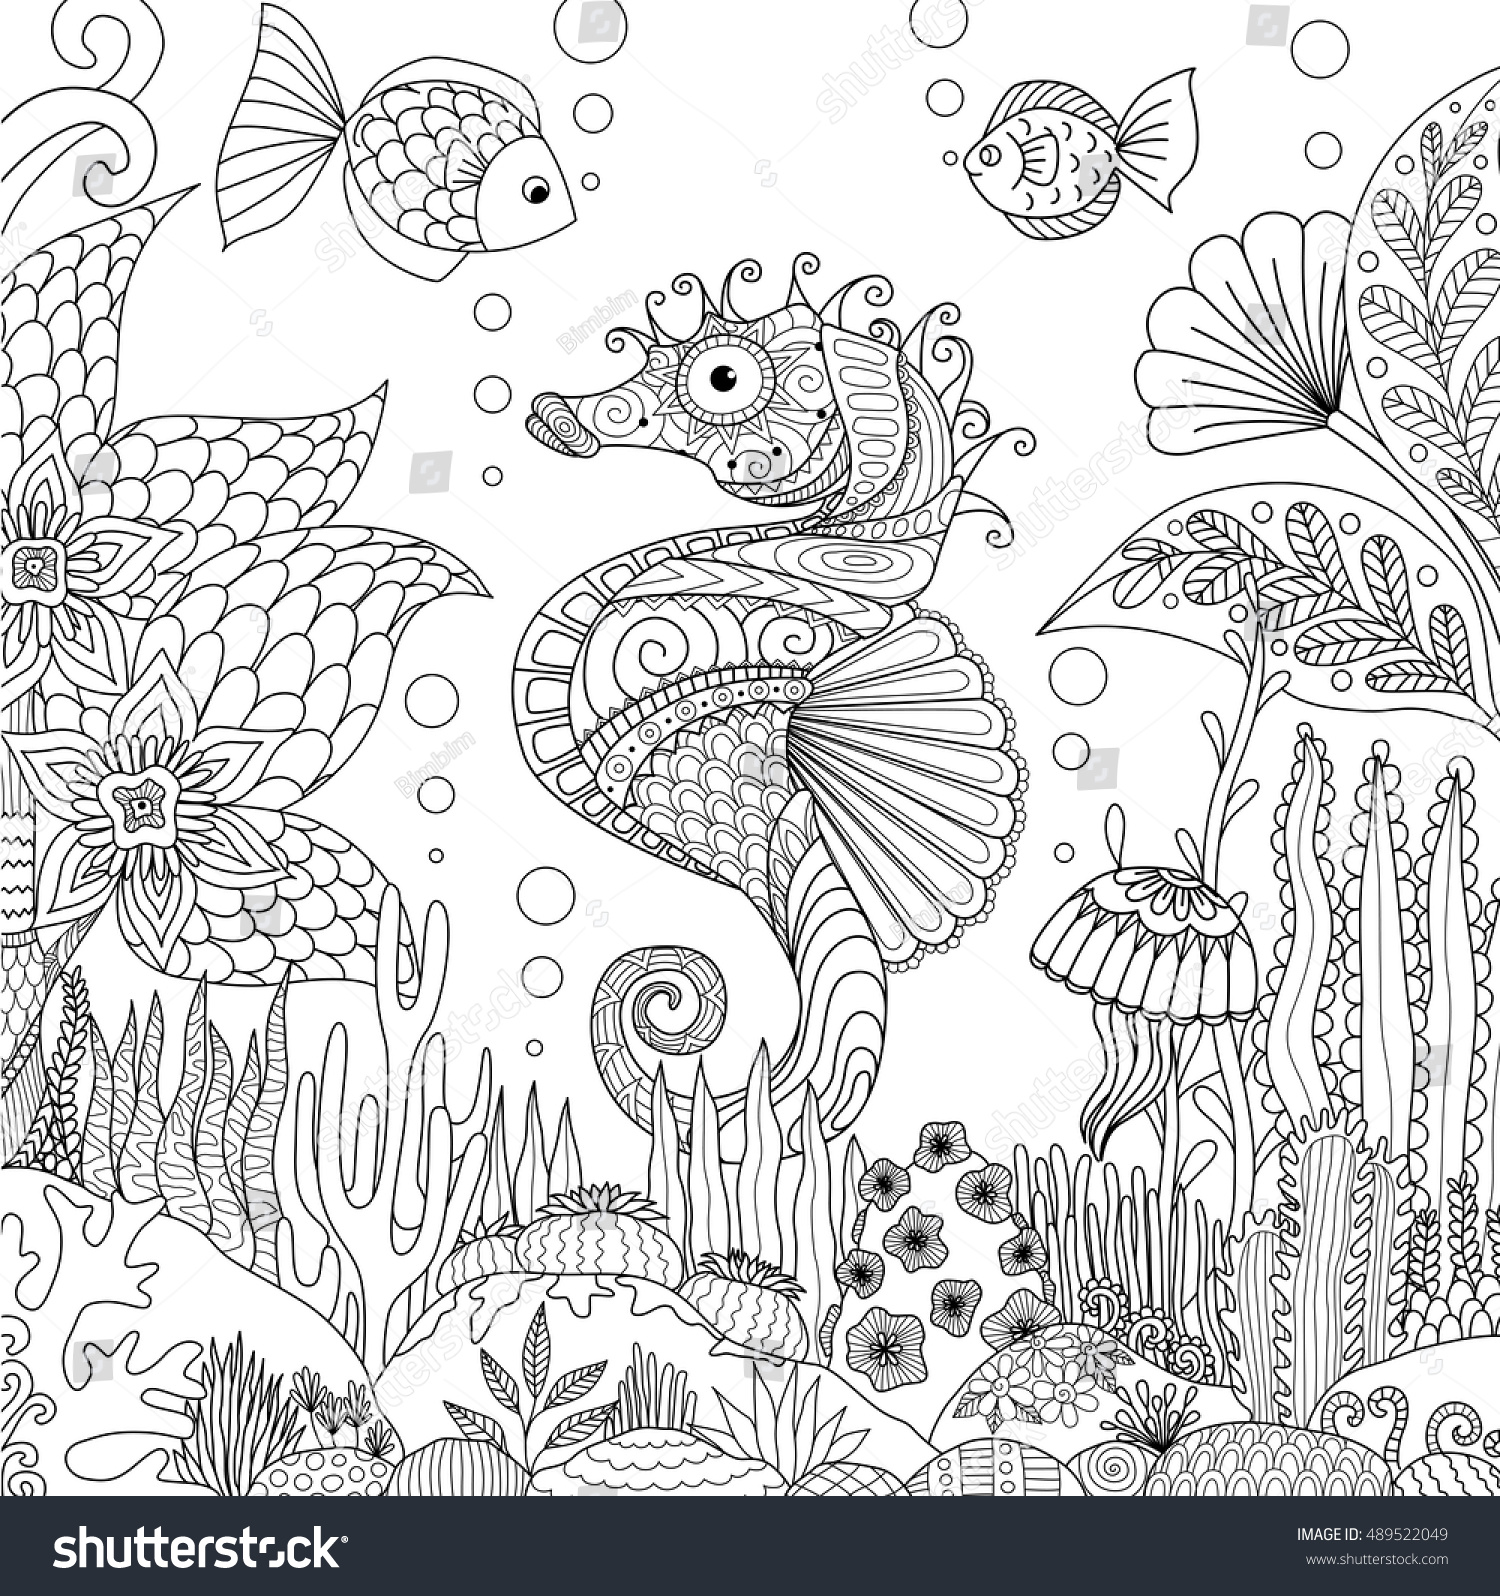 Zen ocean colouring book - Zendoodle Design Of Seahorse Swimming Under Ocean Surrounding By Beautiful Corals And Seaweeds For Adult